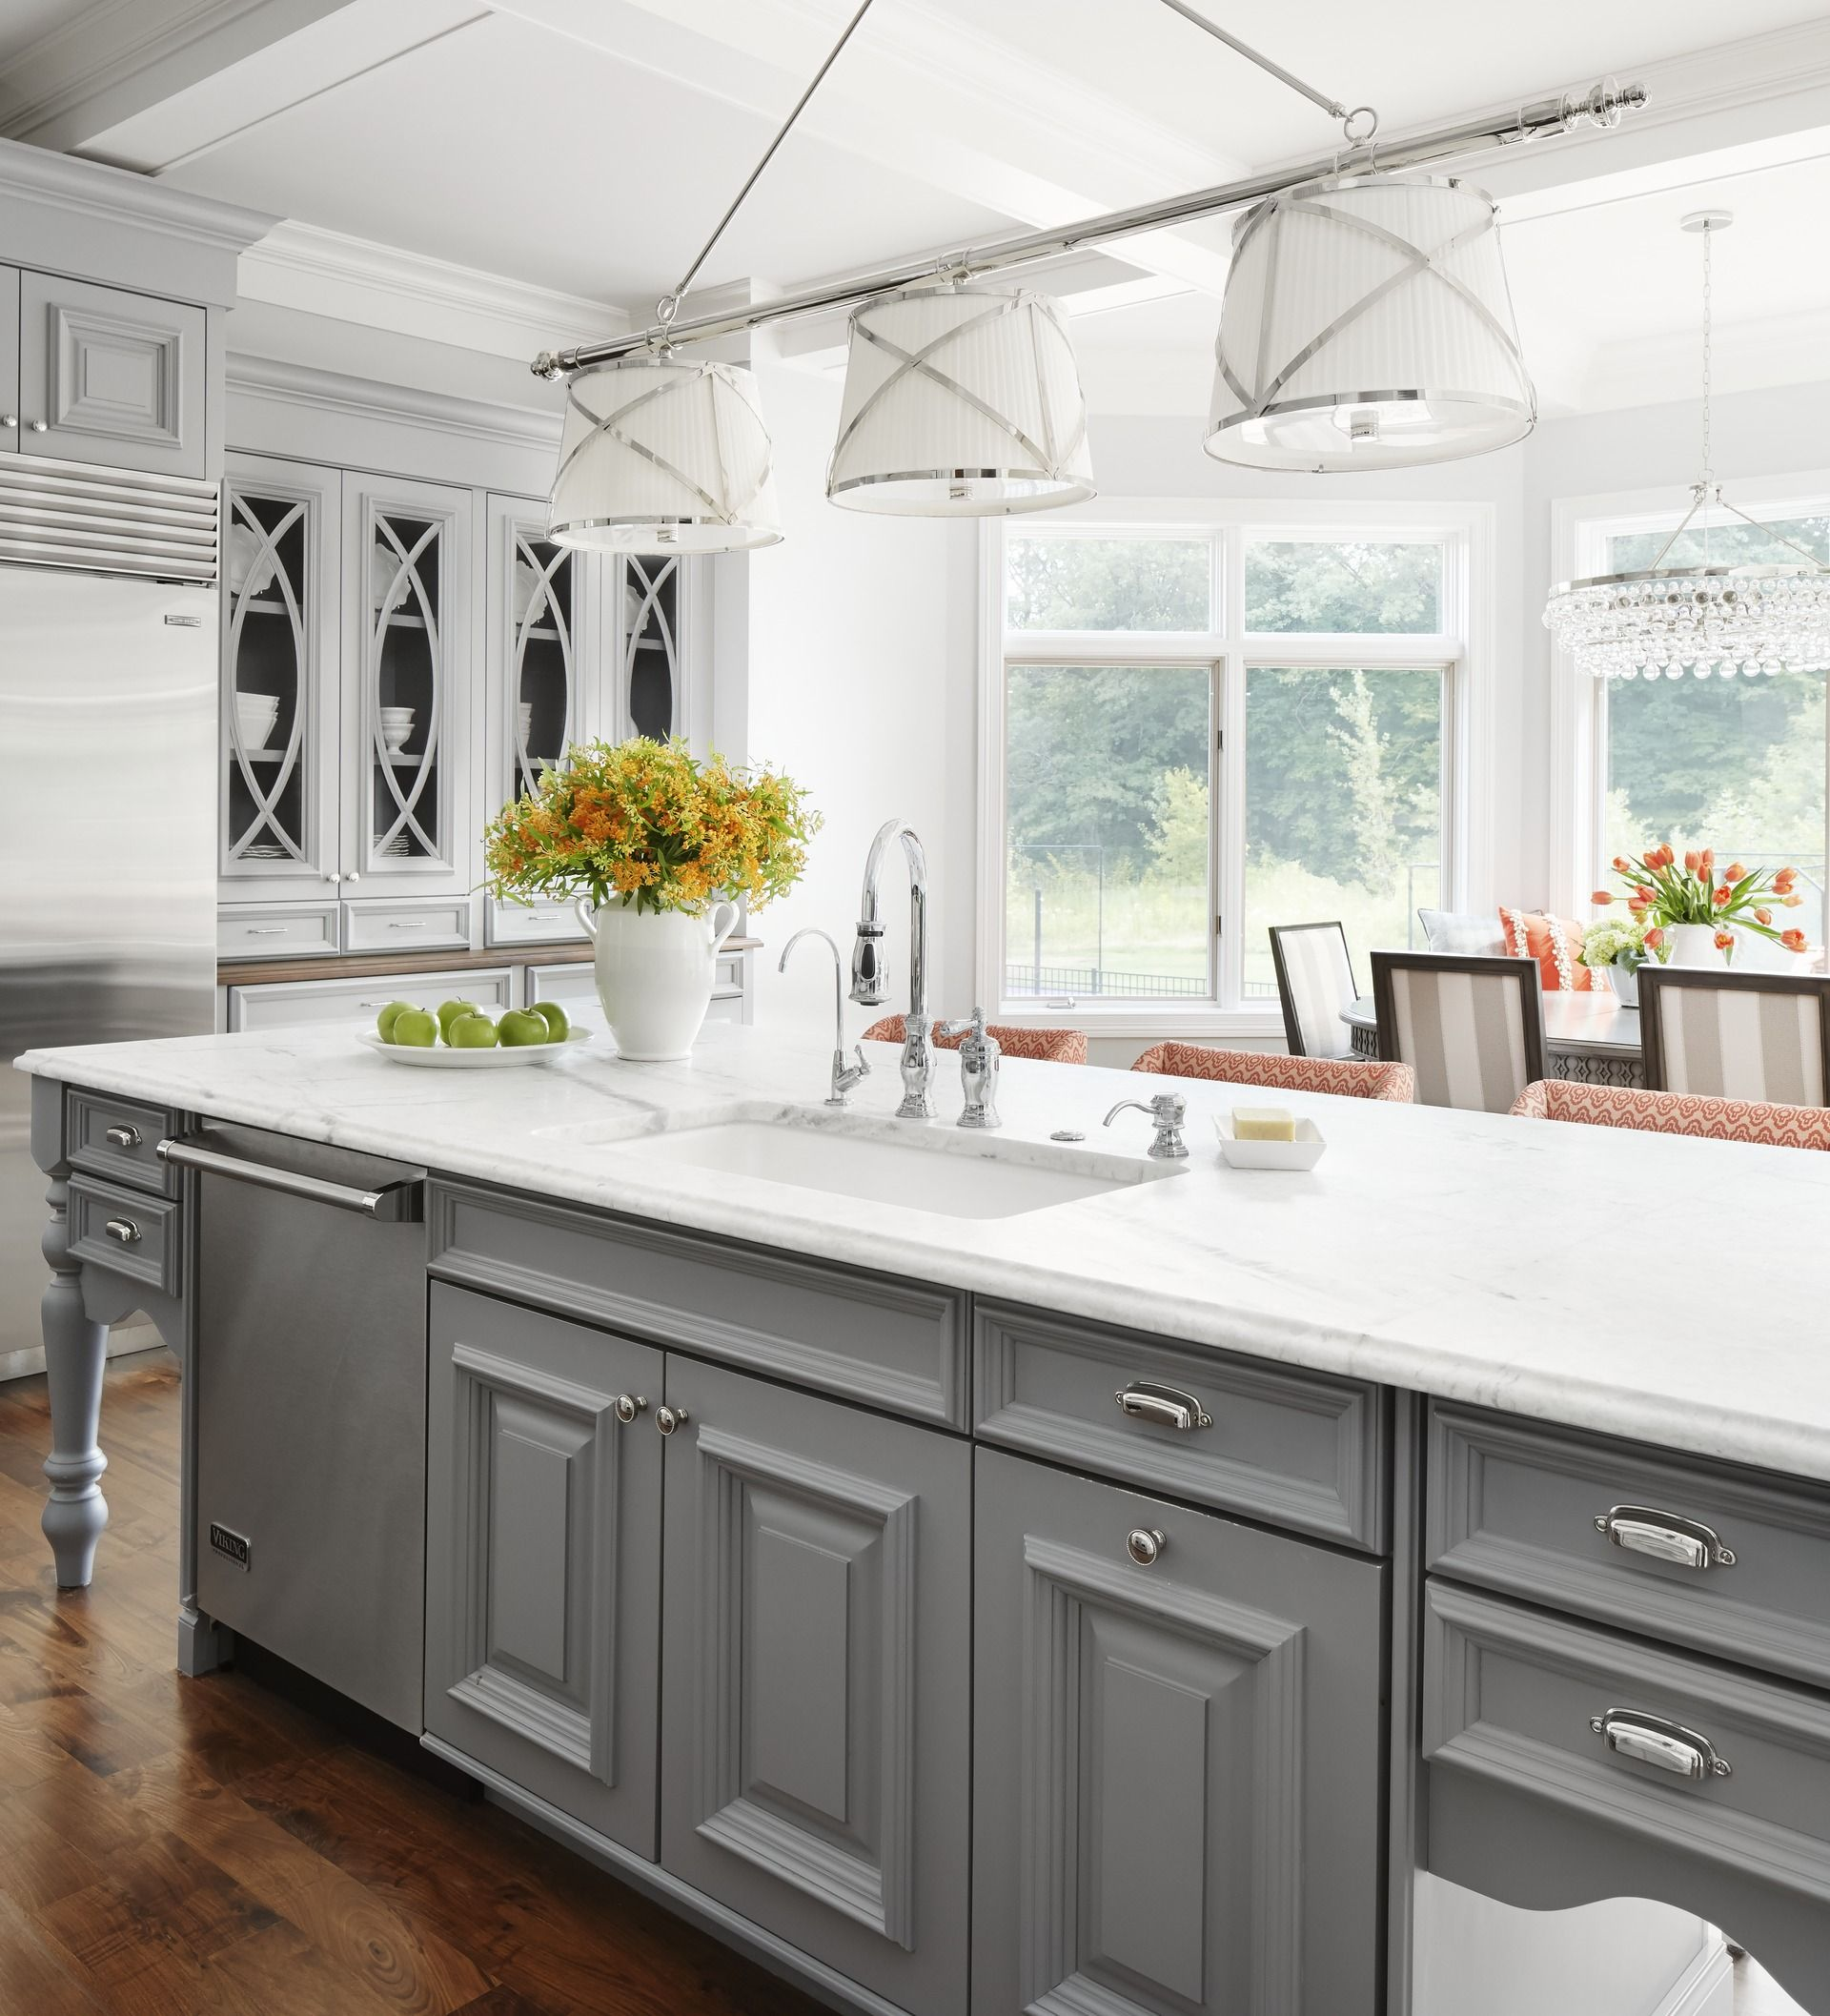 20 Ideas For Grey Kitchens Both: Midwest Kitchen That's Gorgeous In Gray In 2019